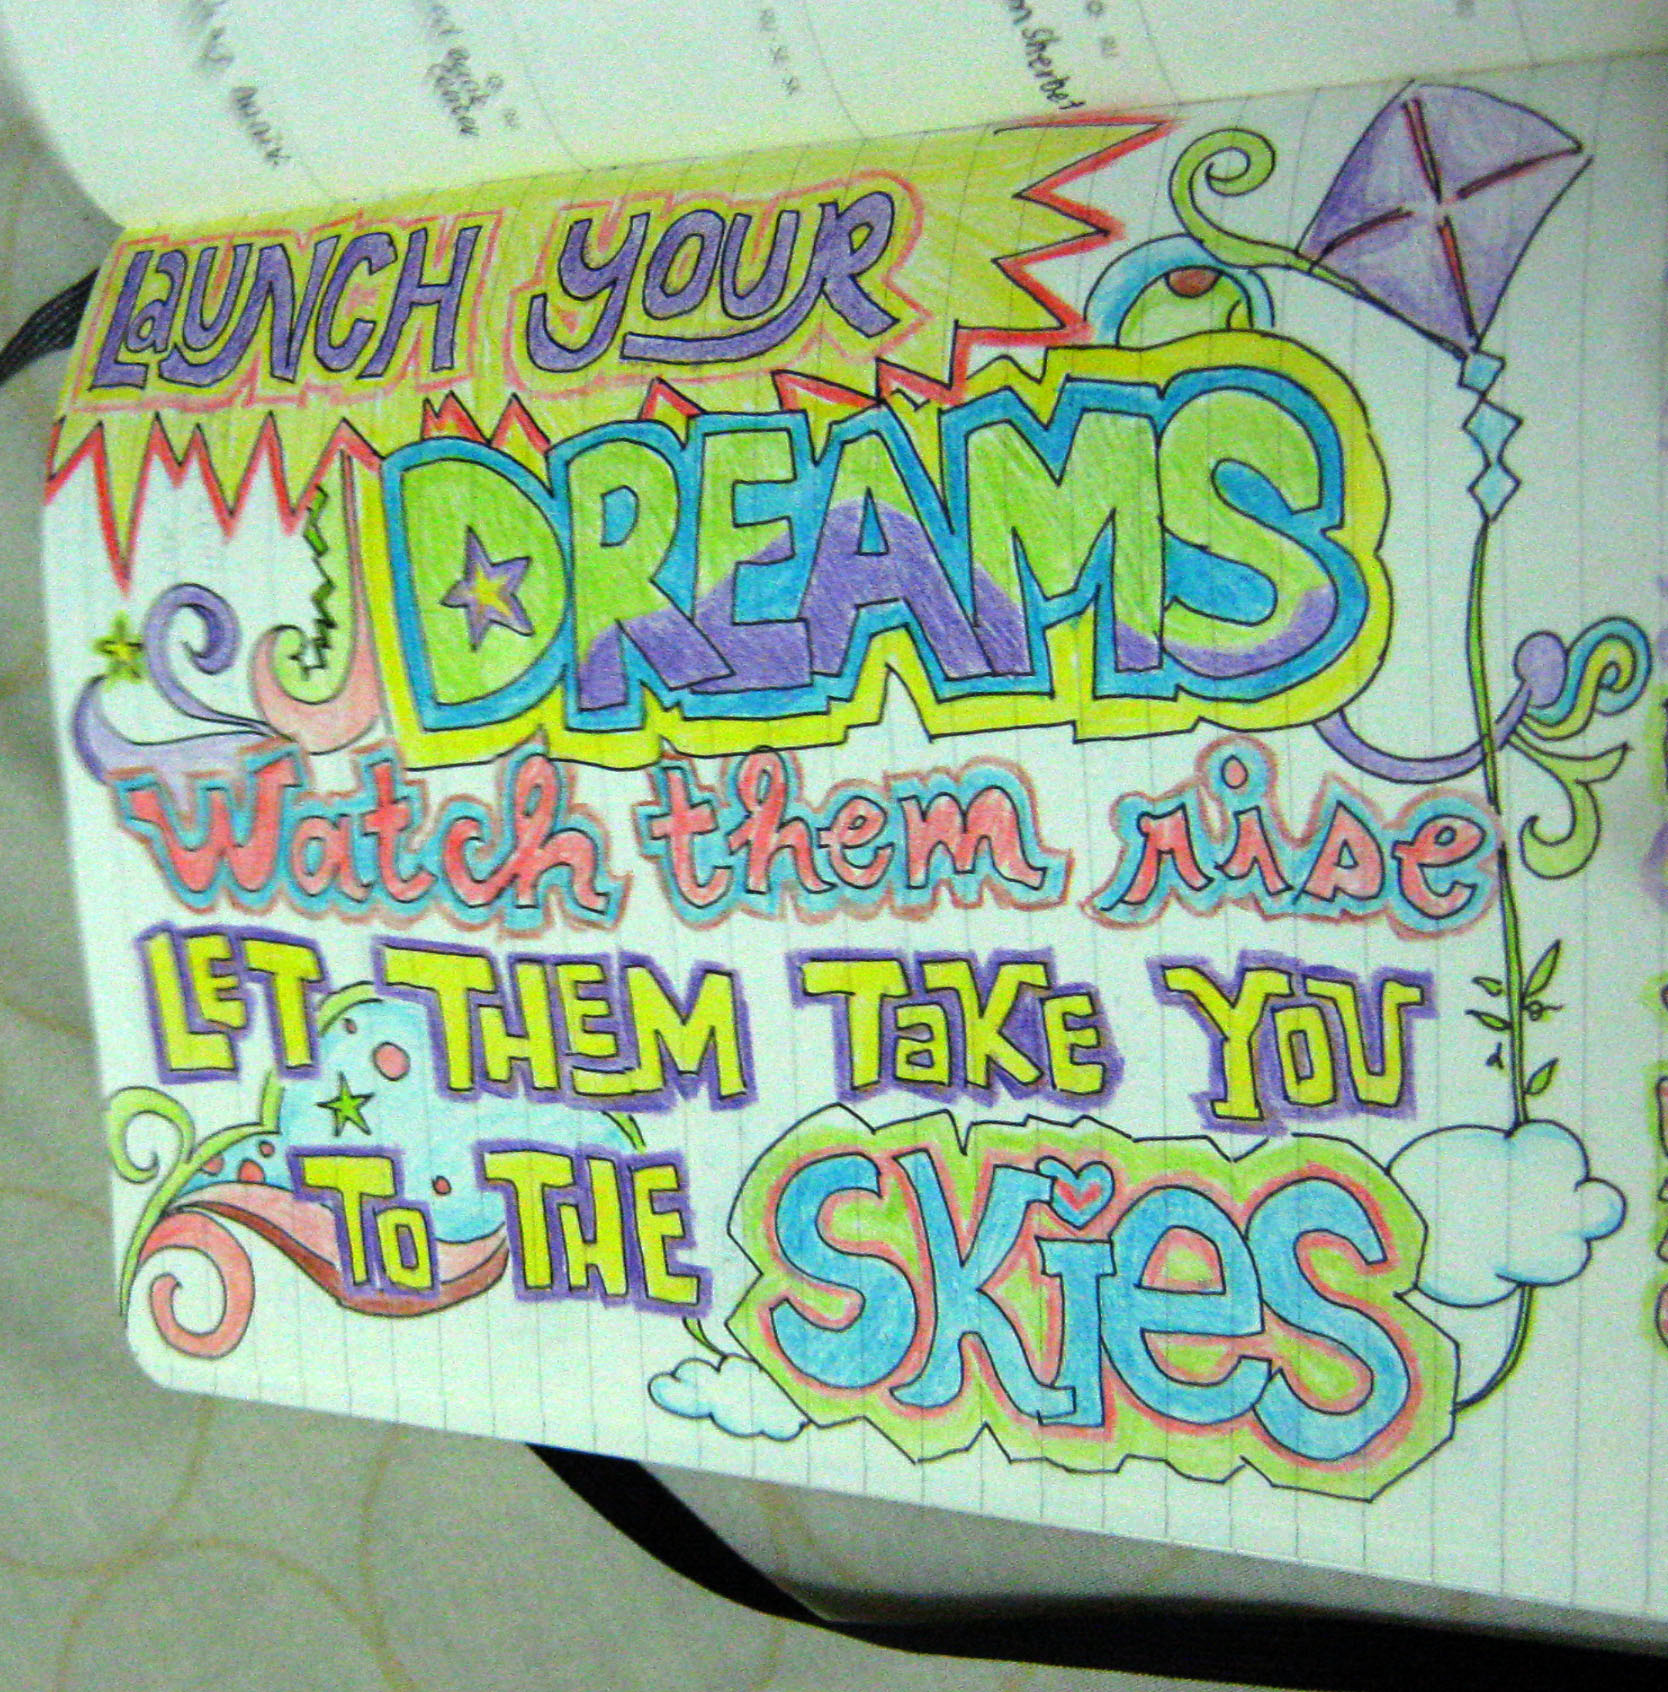 Launch Your Dreams